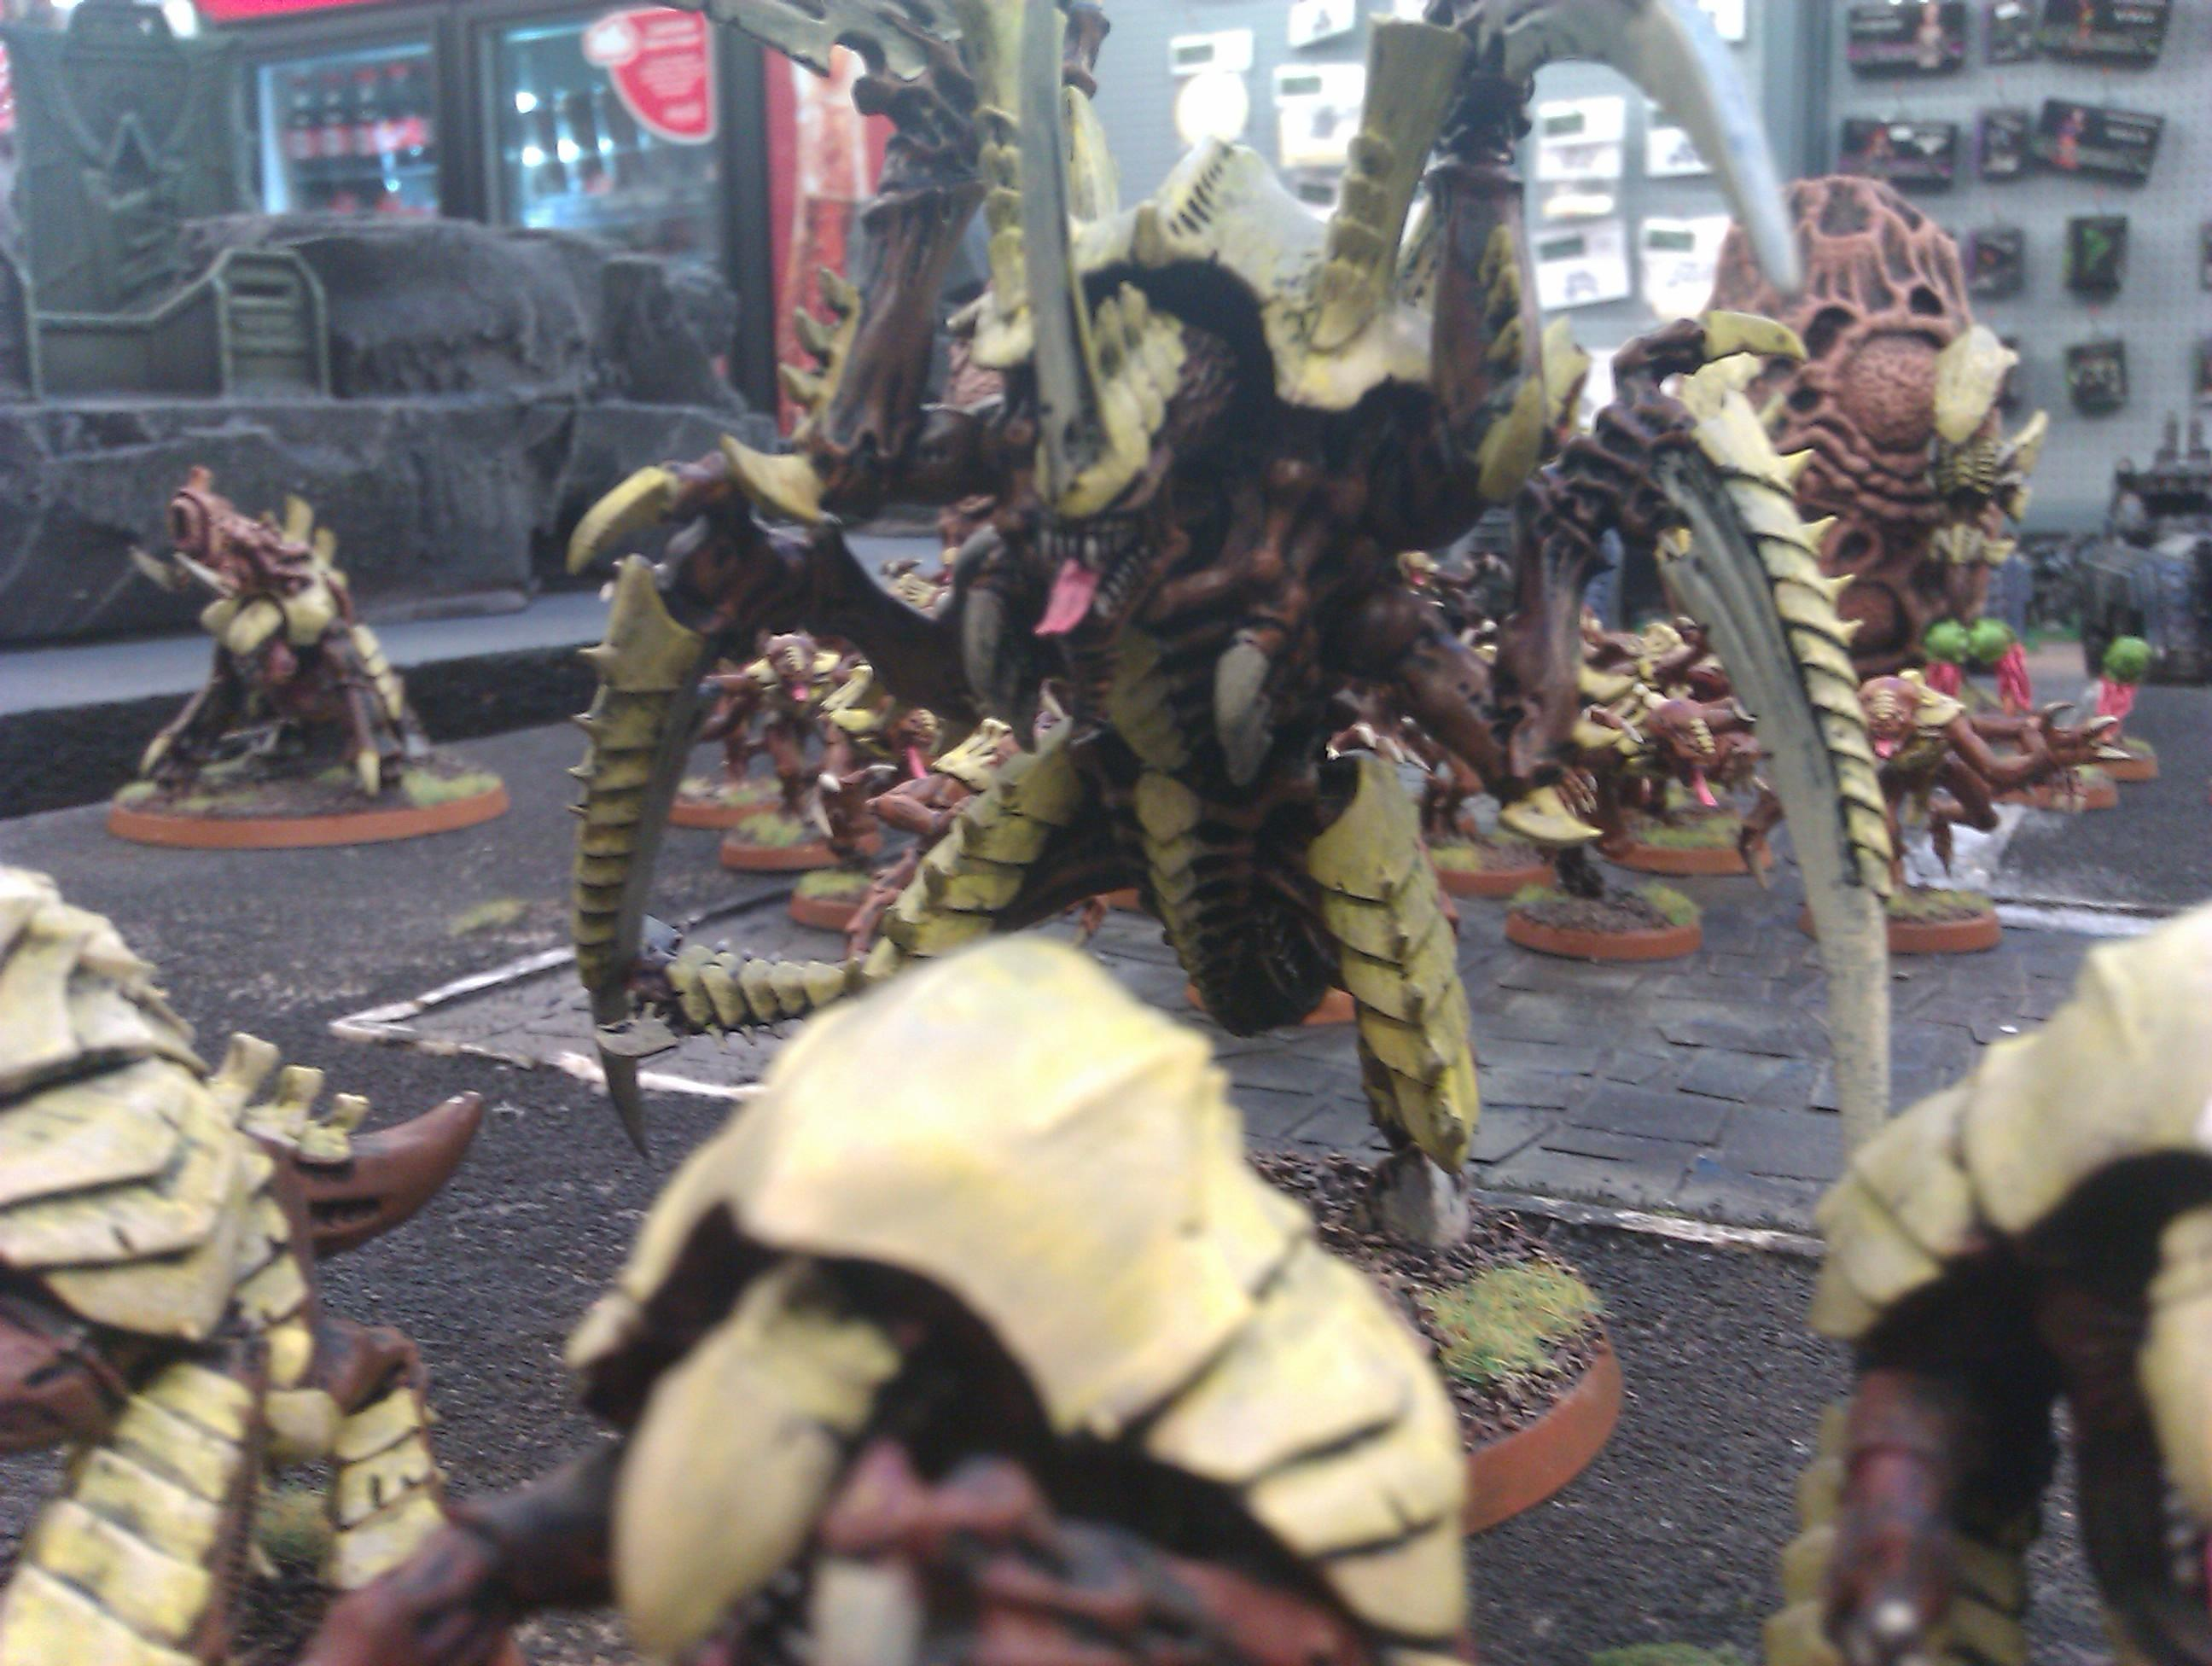 Battle Report, Imperial Guard, Pdf, Space Marines, Tyranids, Ultramarines